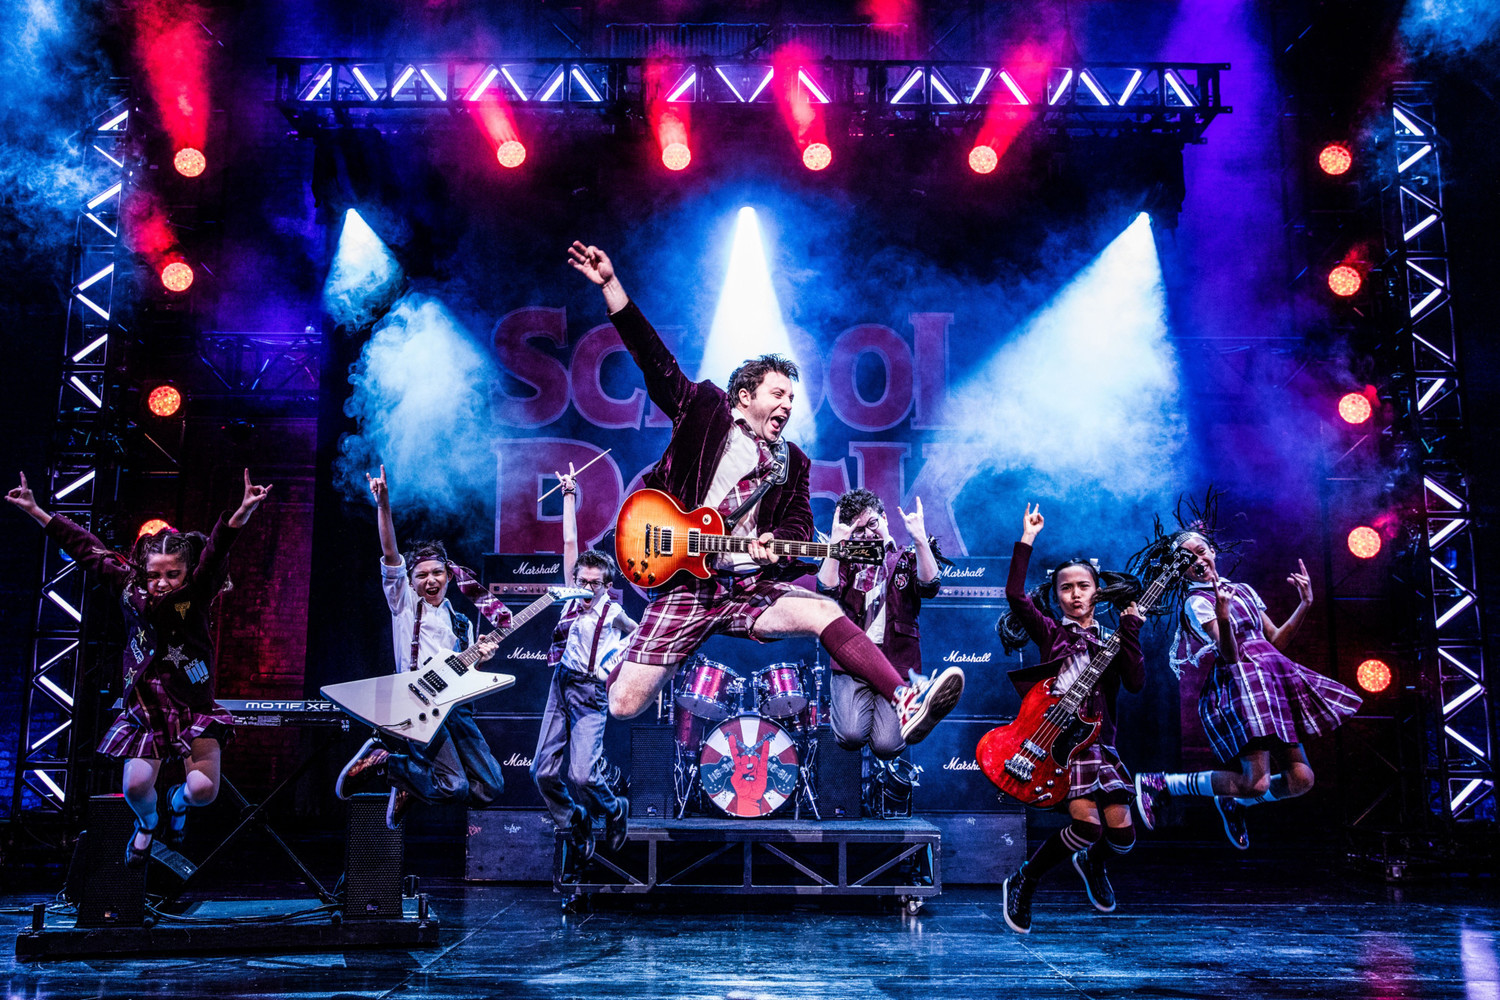 BWW Review: Enjoyable SCHOOL OF ROCK at the Connor Palace